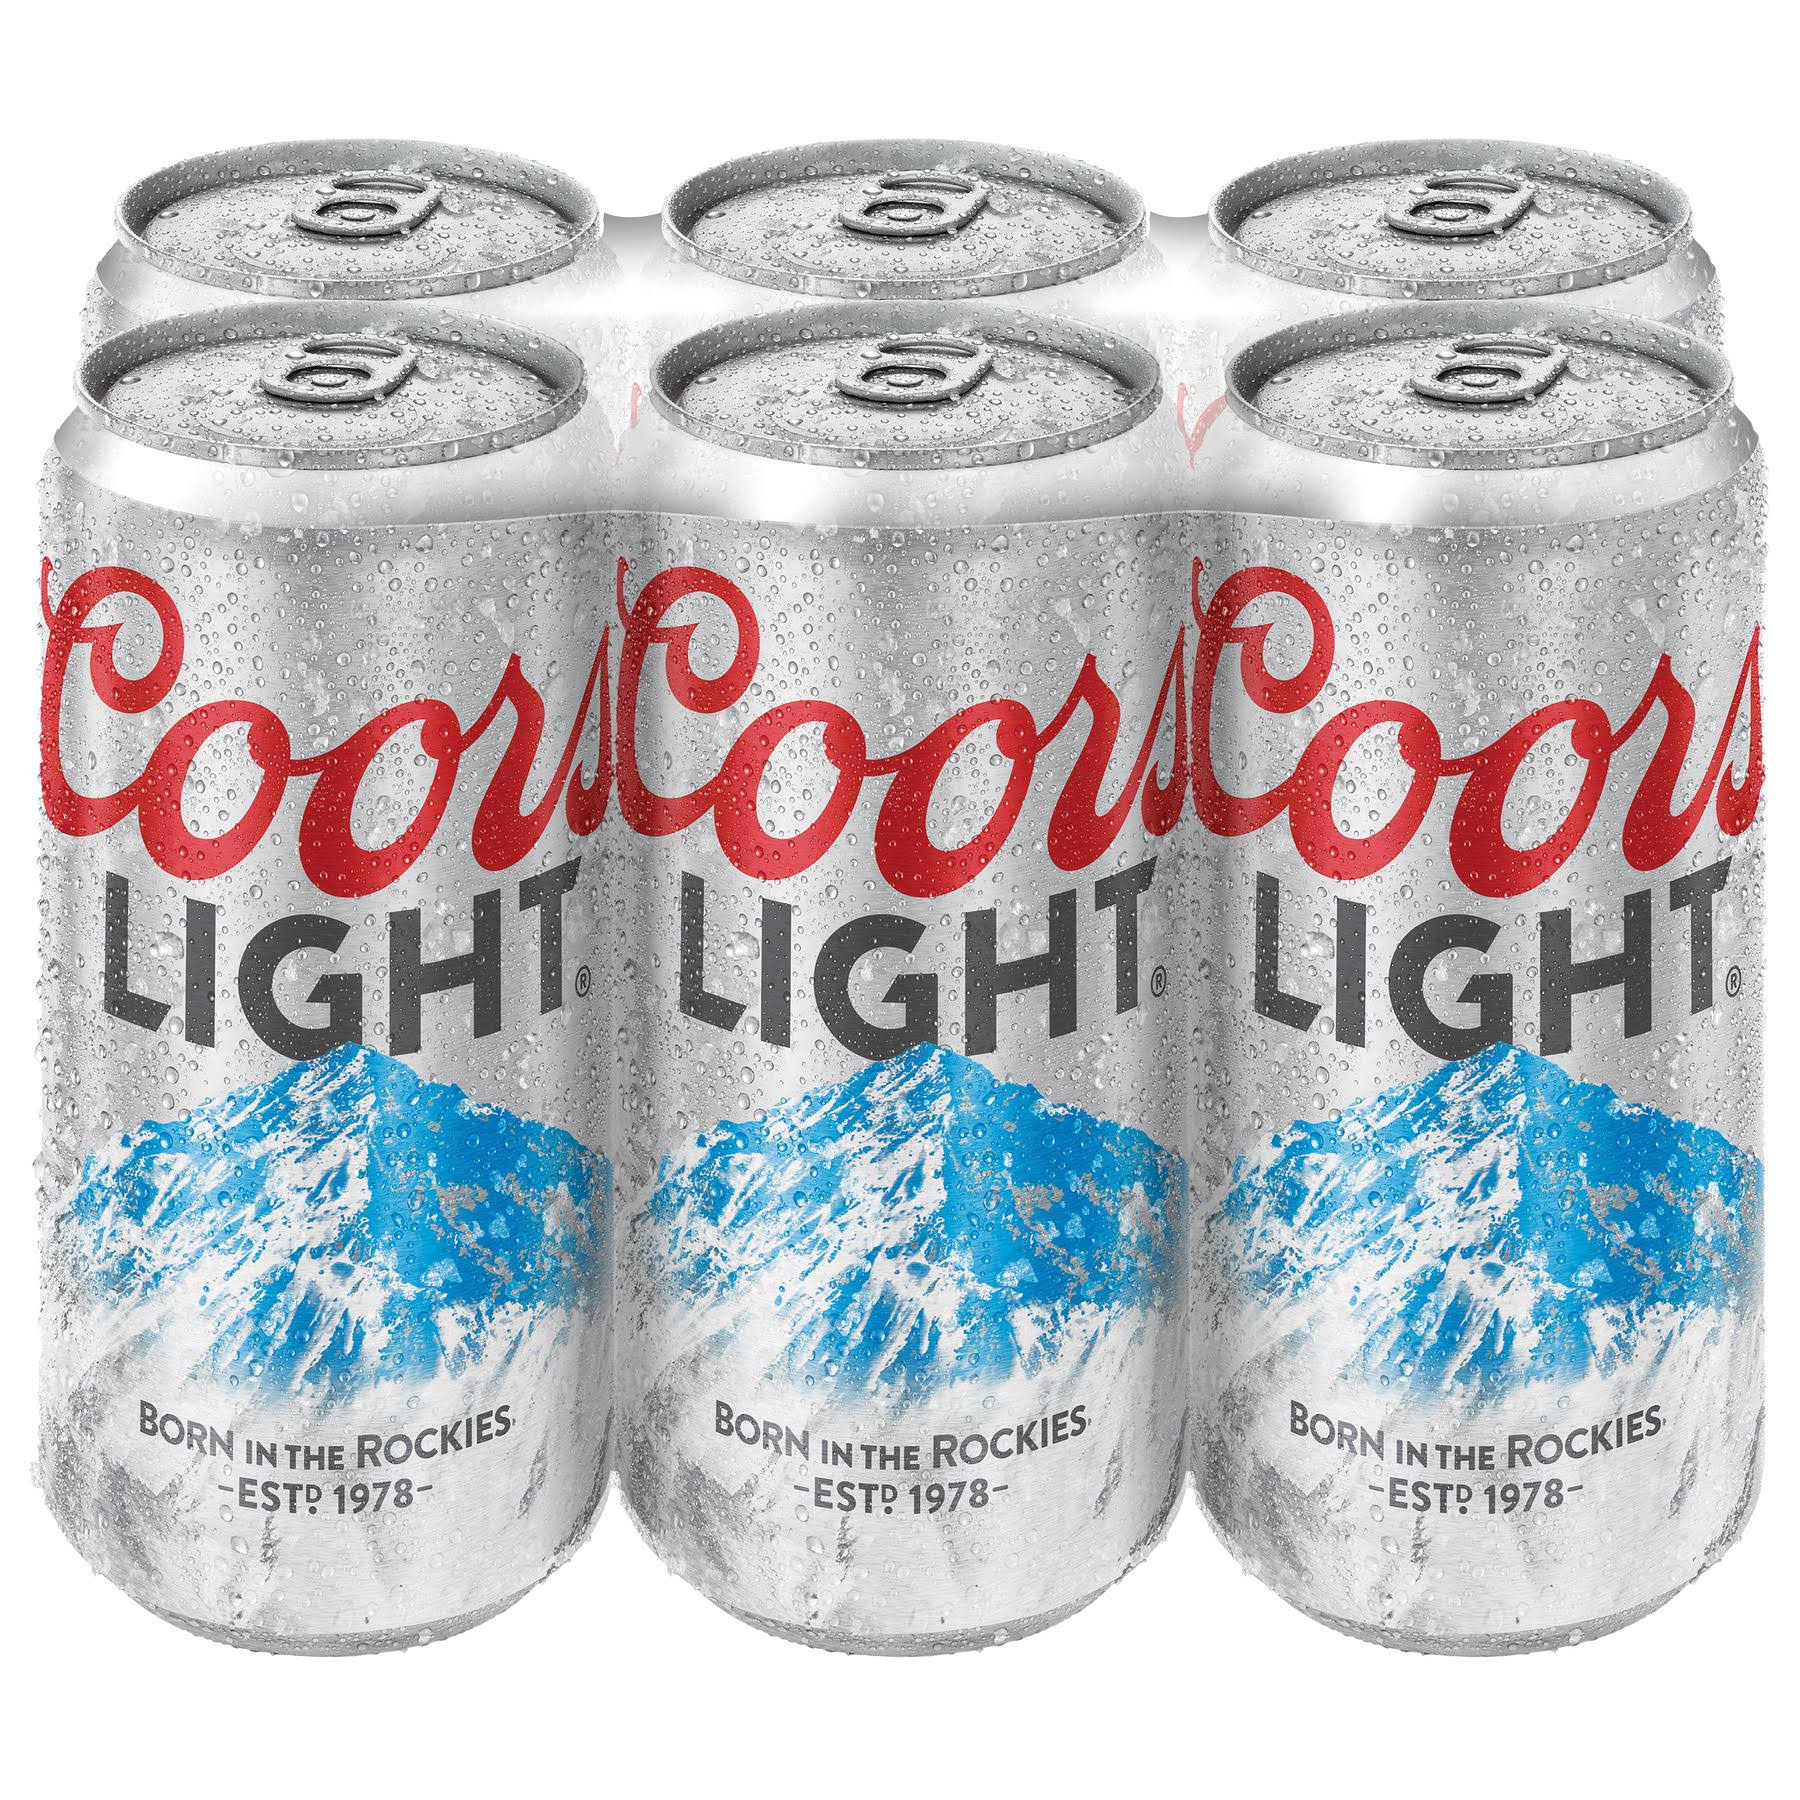 Coors Light Beer - 6 pack, 12 fl oz cans